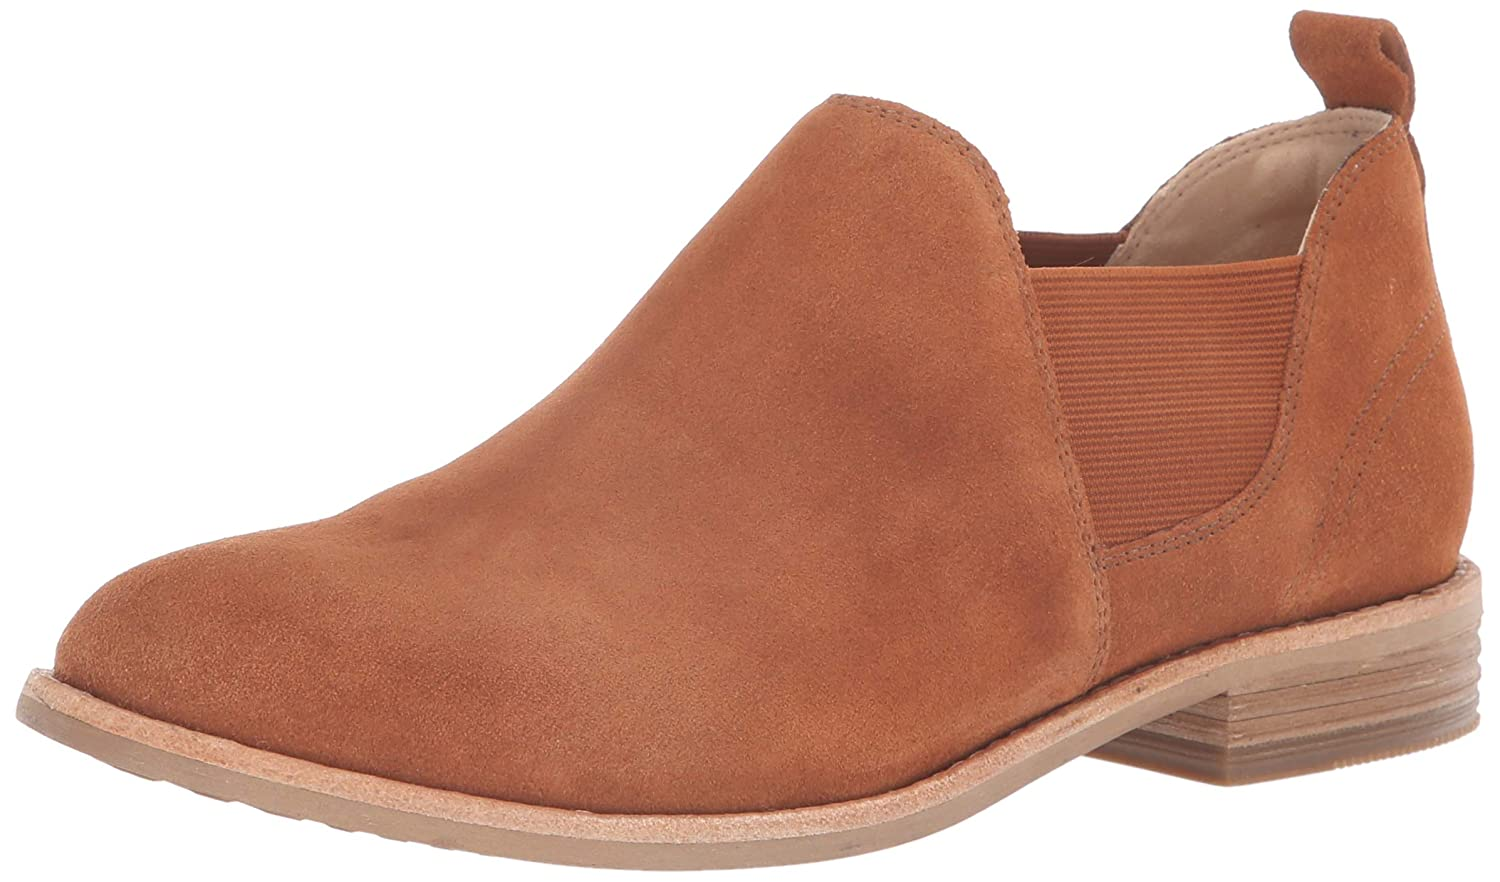 Dark Tan Suede Clarks Womens Edenvale Page Fashion Boot